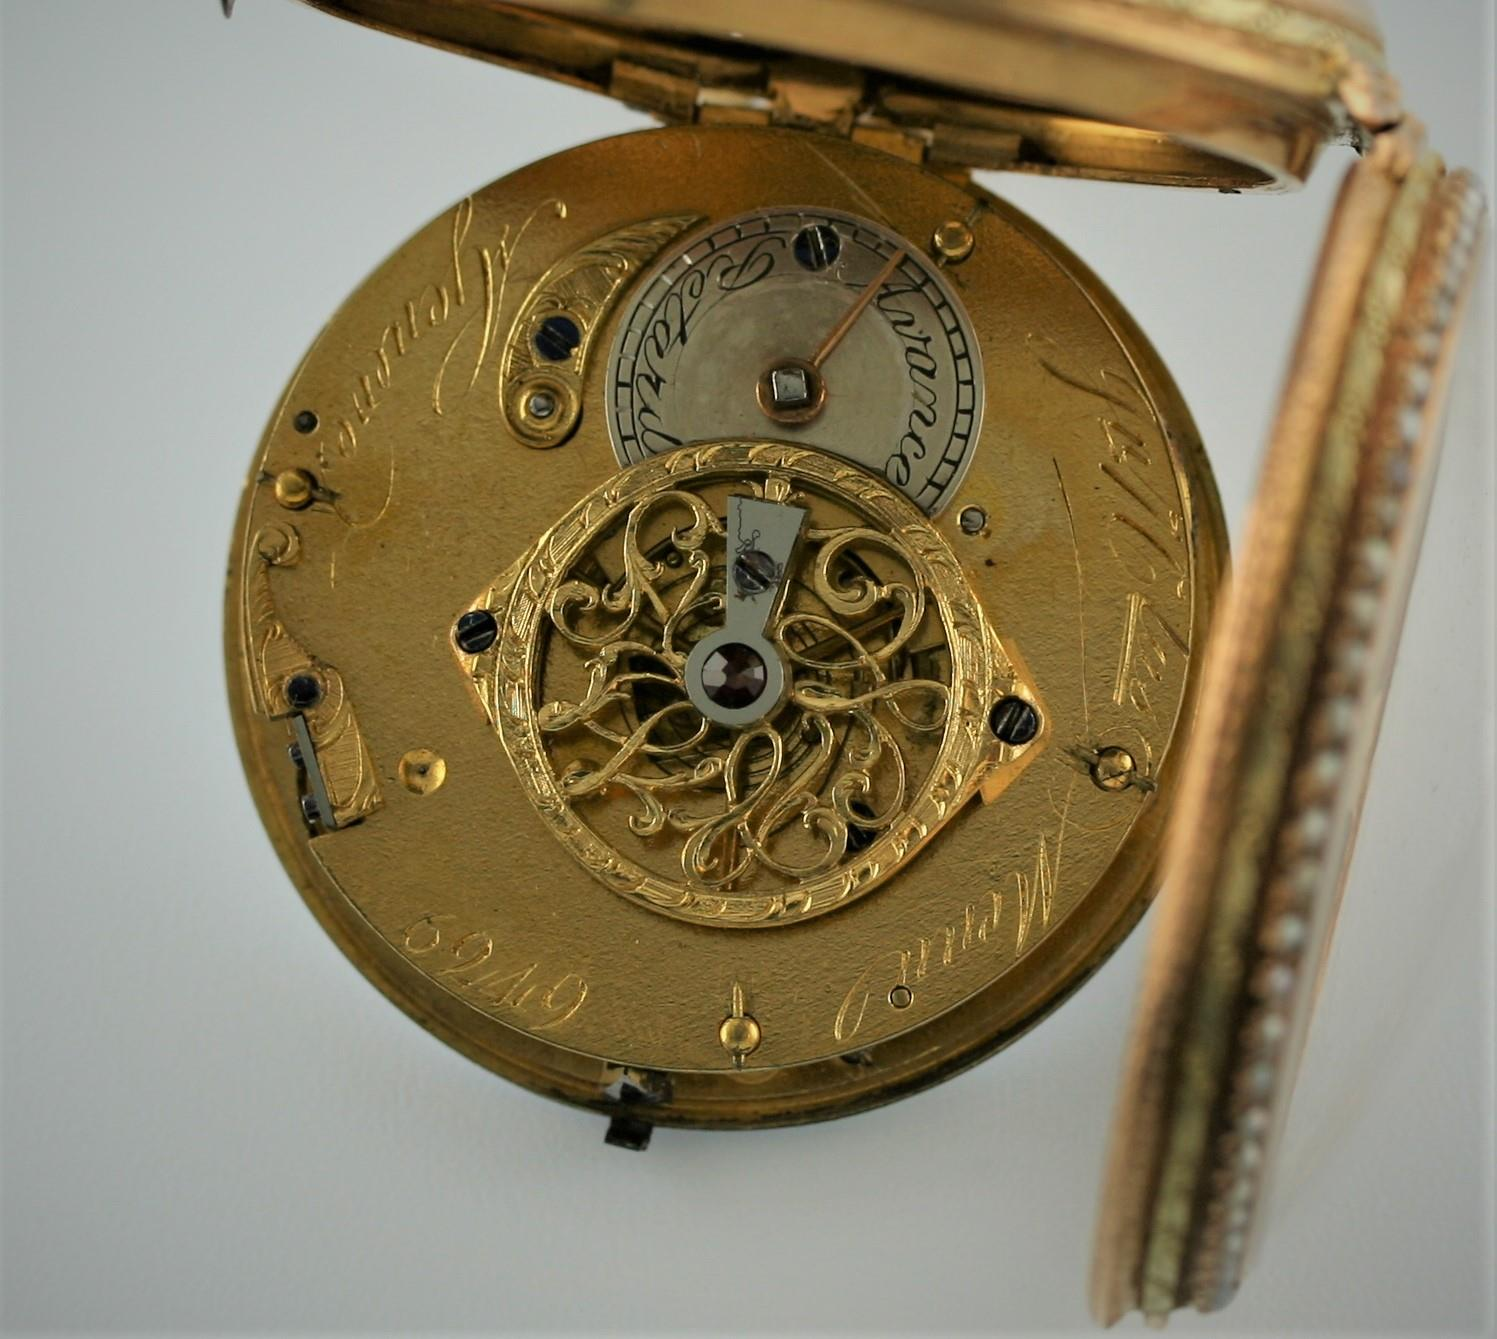 A SWISS LATE 18TH CENTURY PAIR CASED POCKET WATCH BY JEAN NICOLAS MENU the signed white enamel - Image 5 of 10